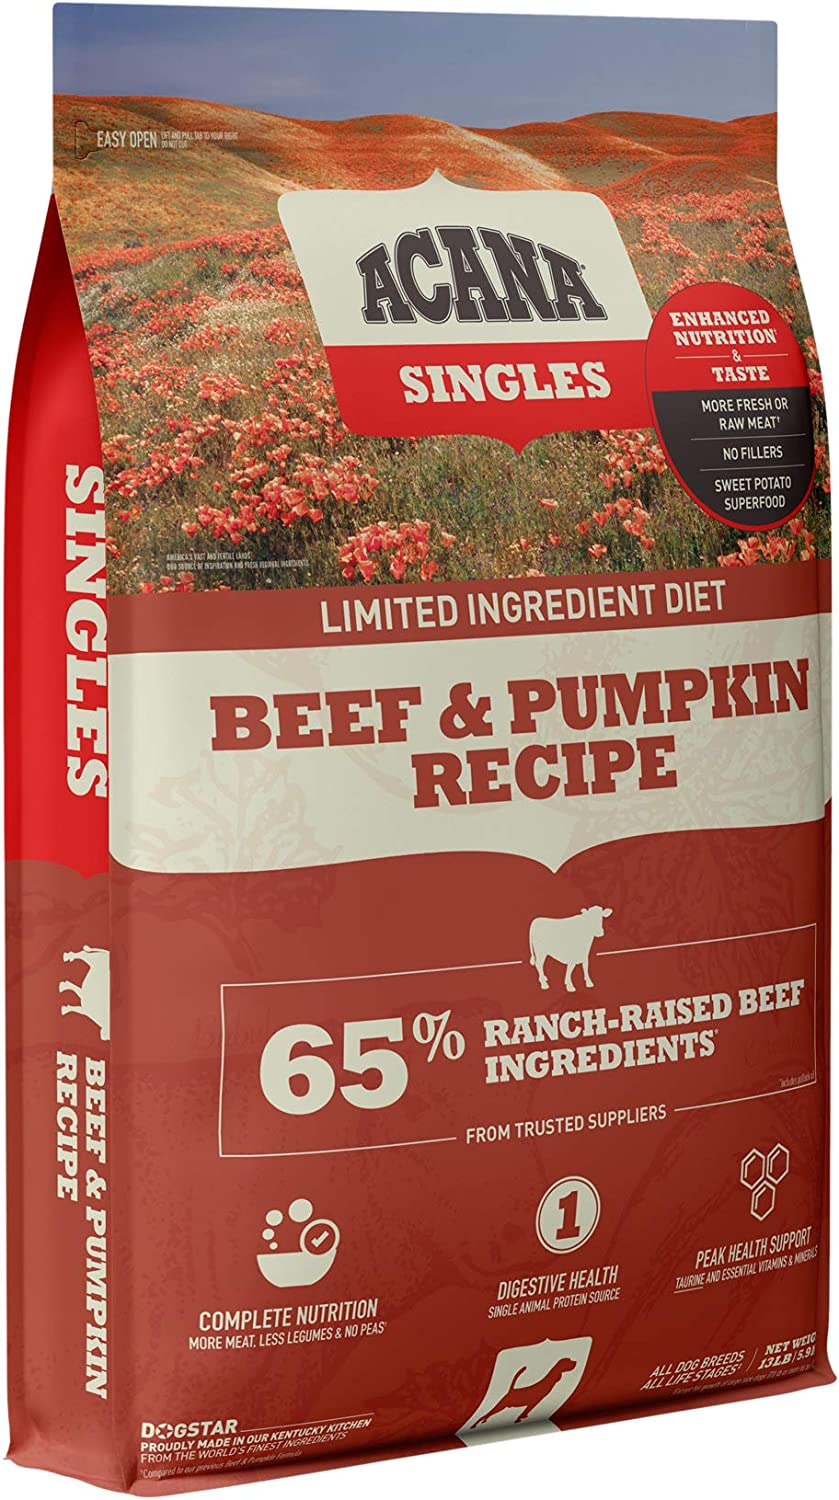 Acana Singles Limited Ingredient Dry Dog Food, Grain Free, High Protein, Beef & Pumpkin, 13lb